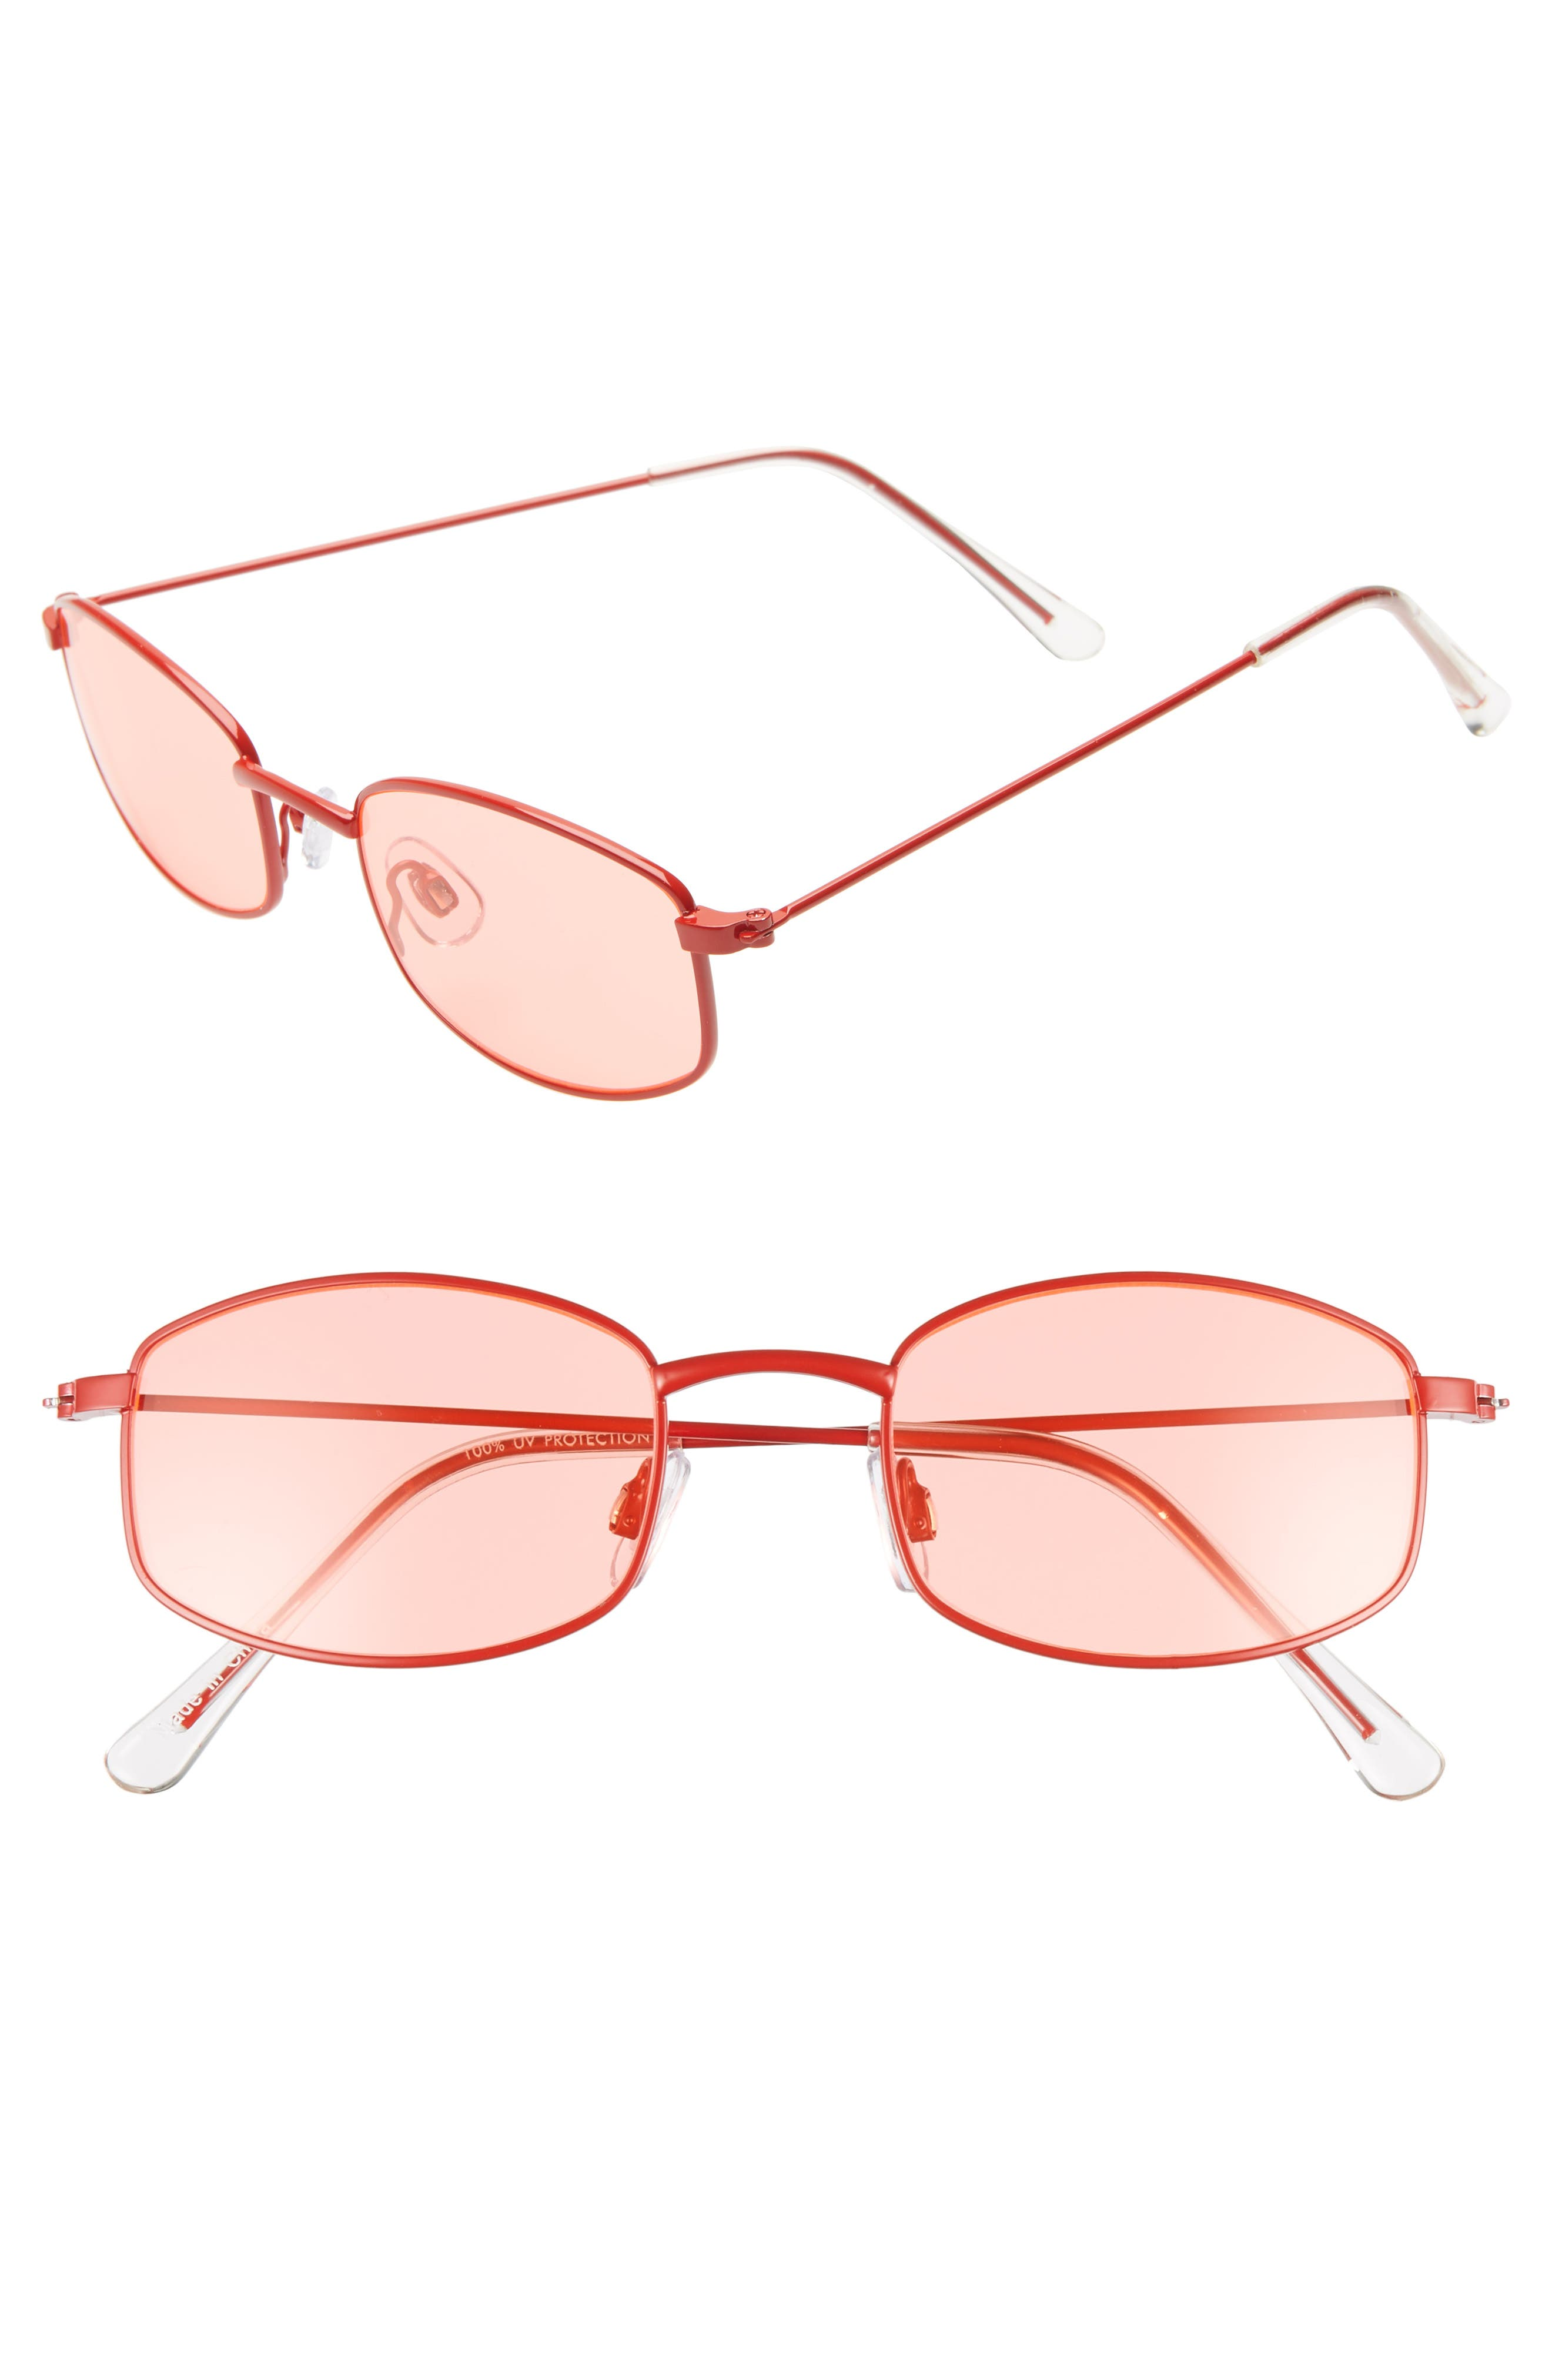 Mini 55mm Square Sunglasses,                             Main thumbnail 1, color,                             RED